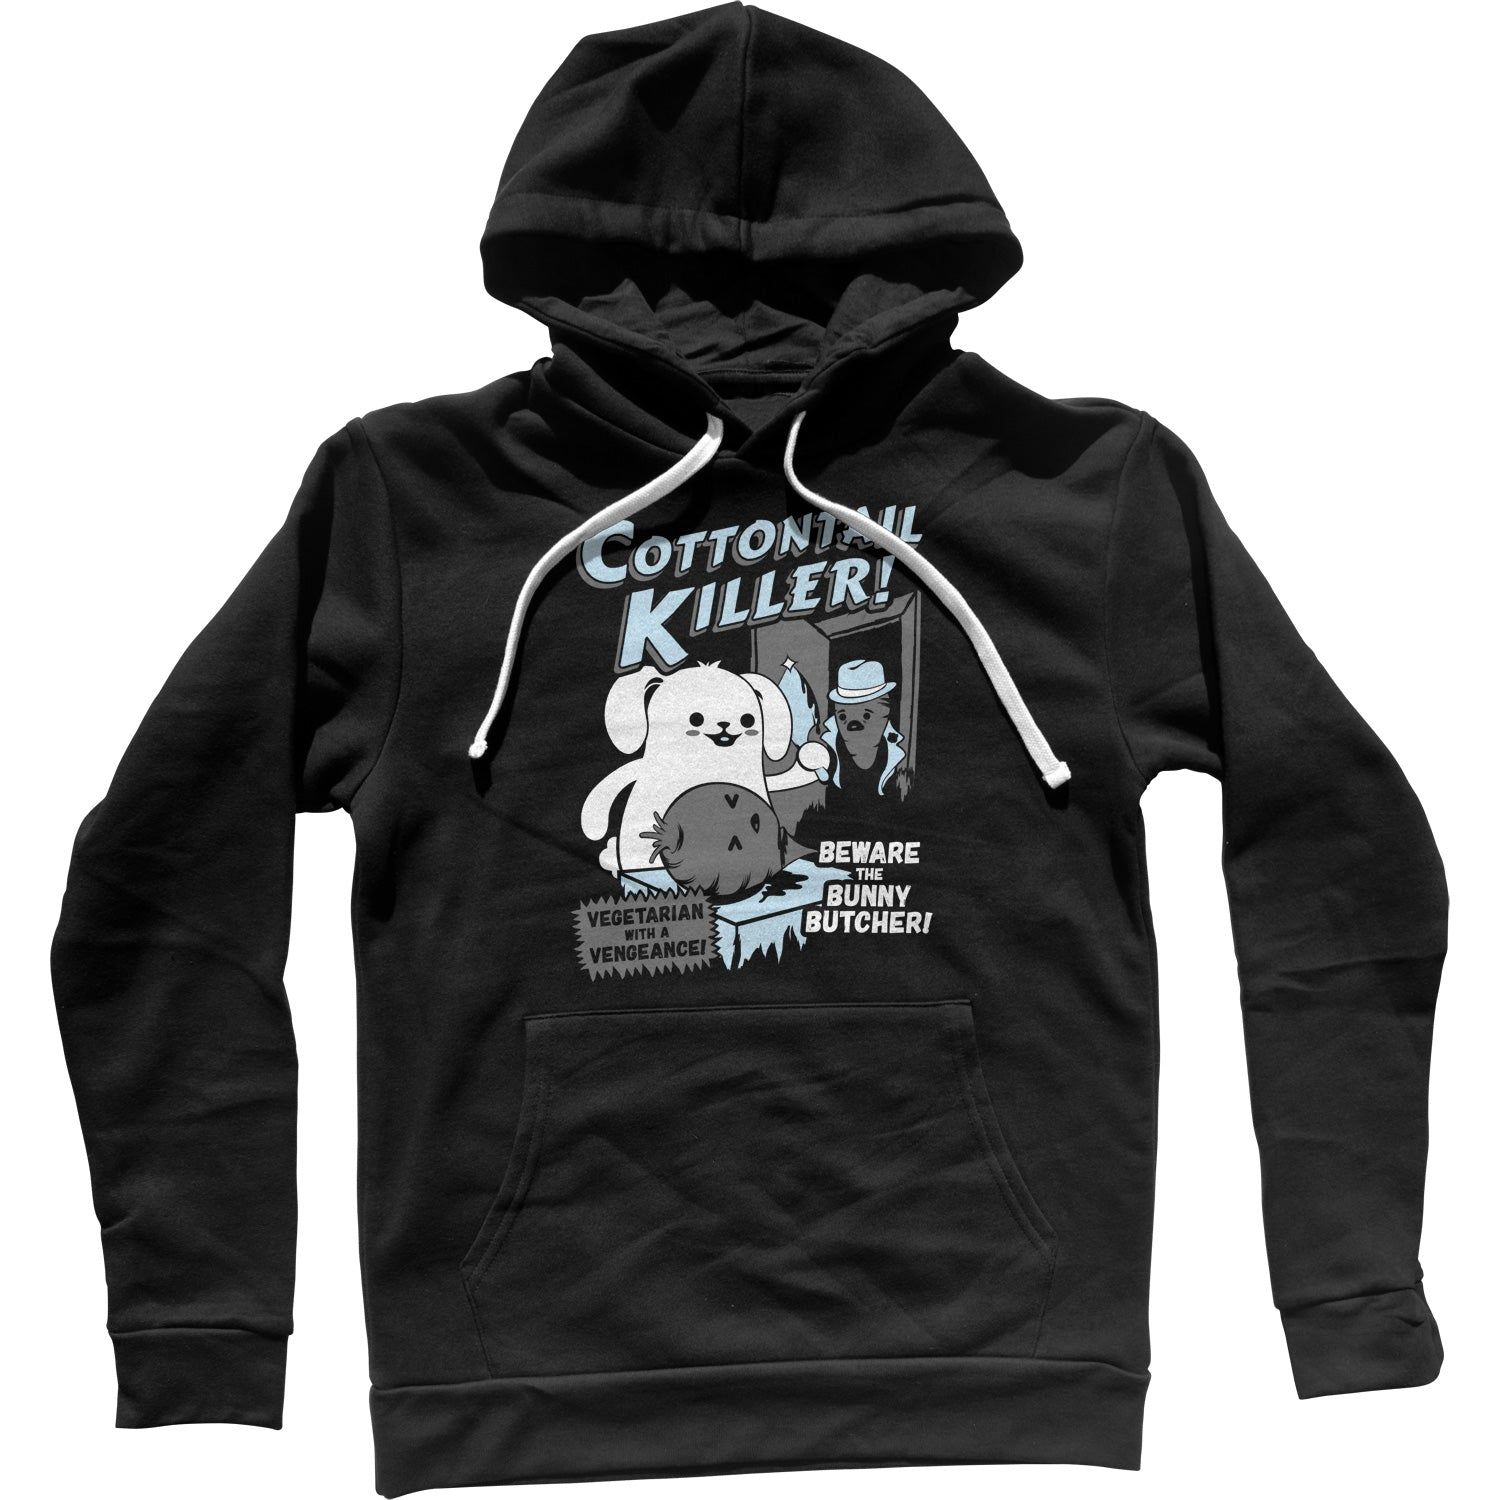 Cottontail Killer Unisex Hoodie